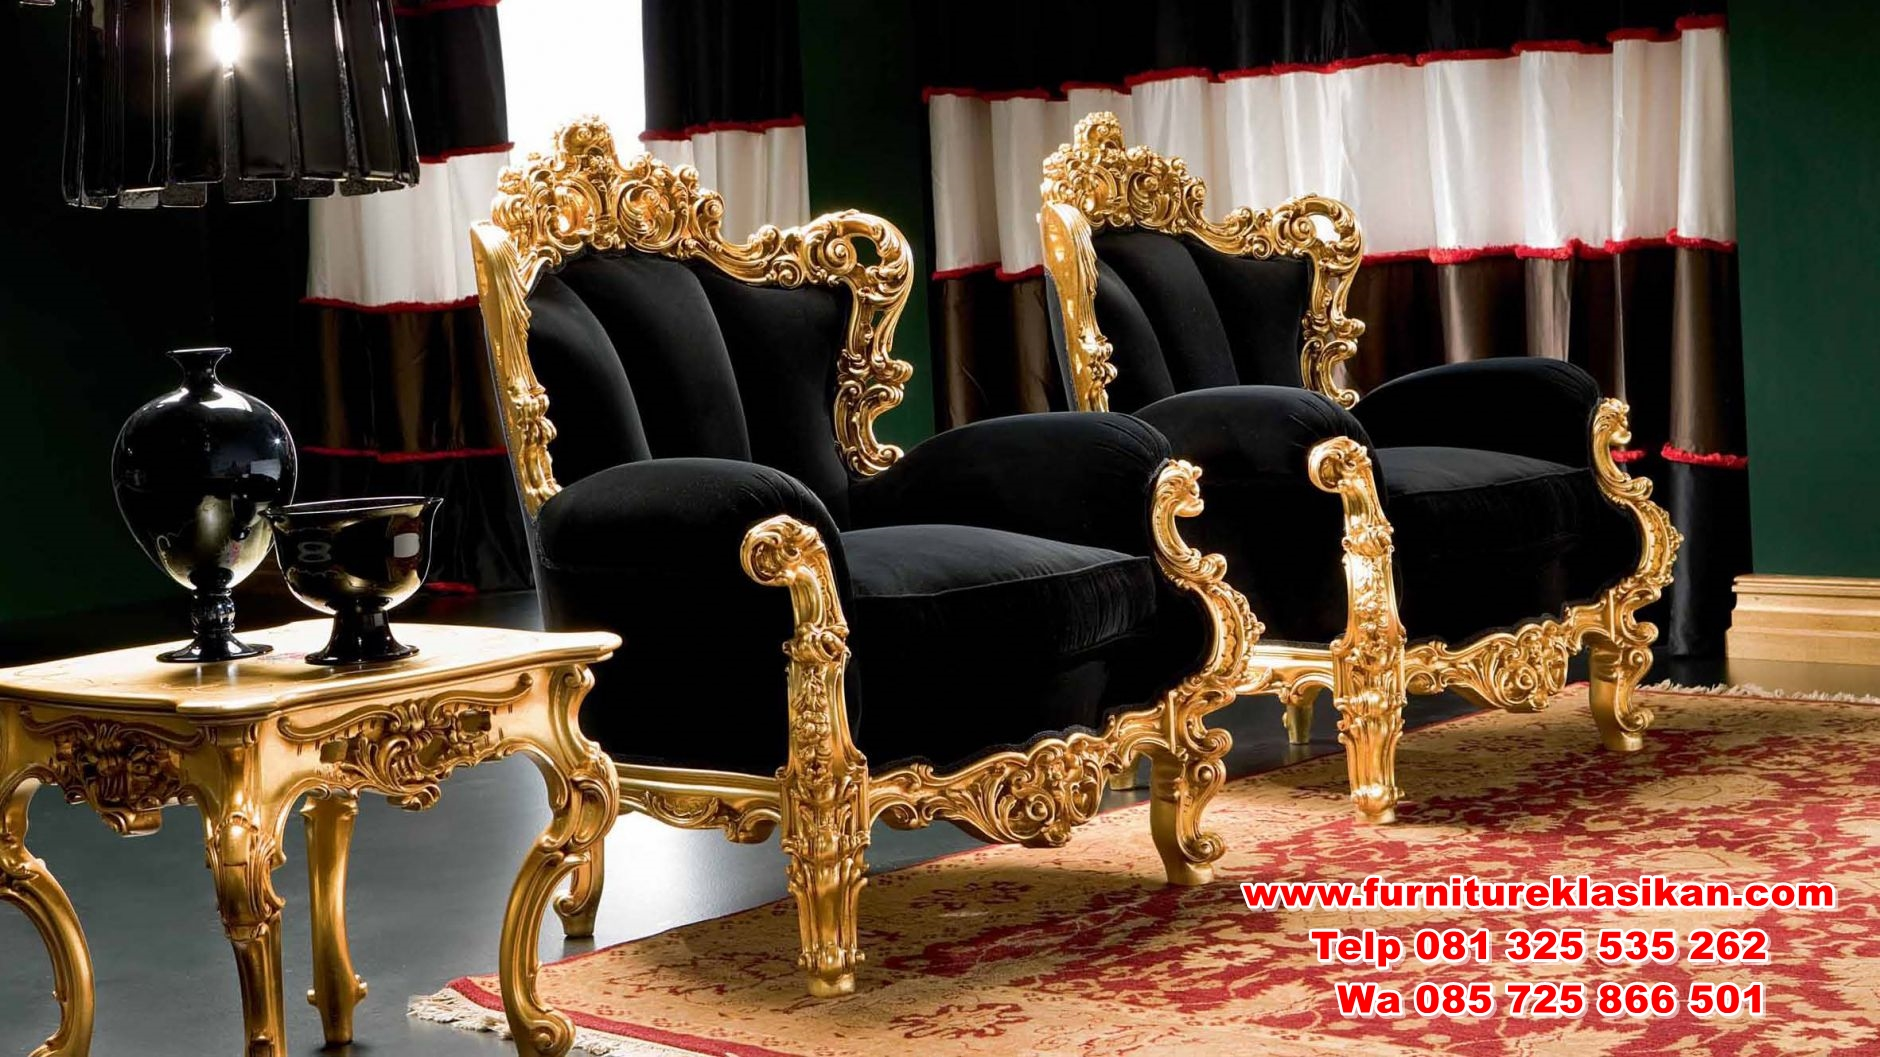 https://furnitureklasikan.com/wp-content/uploads/2018/02/kursi-teras-ukiran-gold-modern.jpg